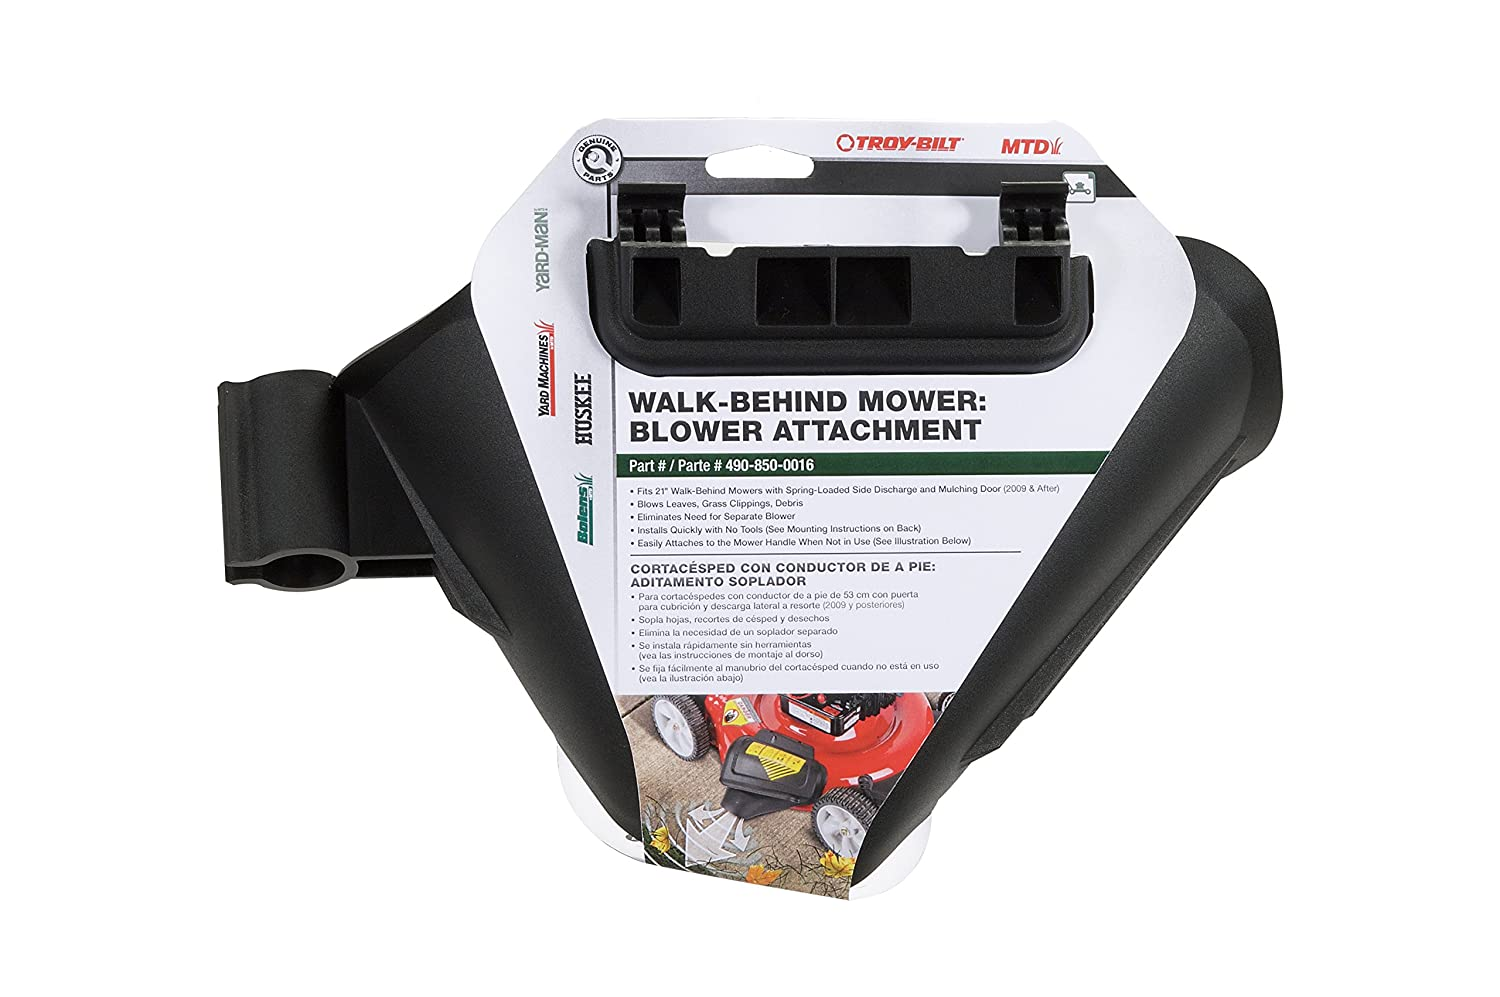 MTD Genuine Parts 21-Inch Walk-Behind Mower Blower Attachment